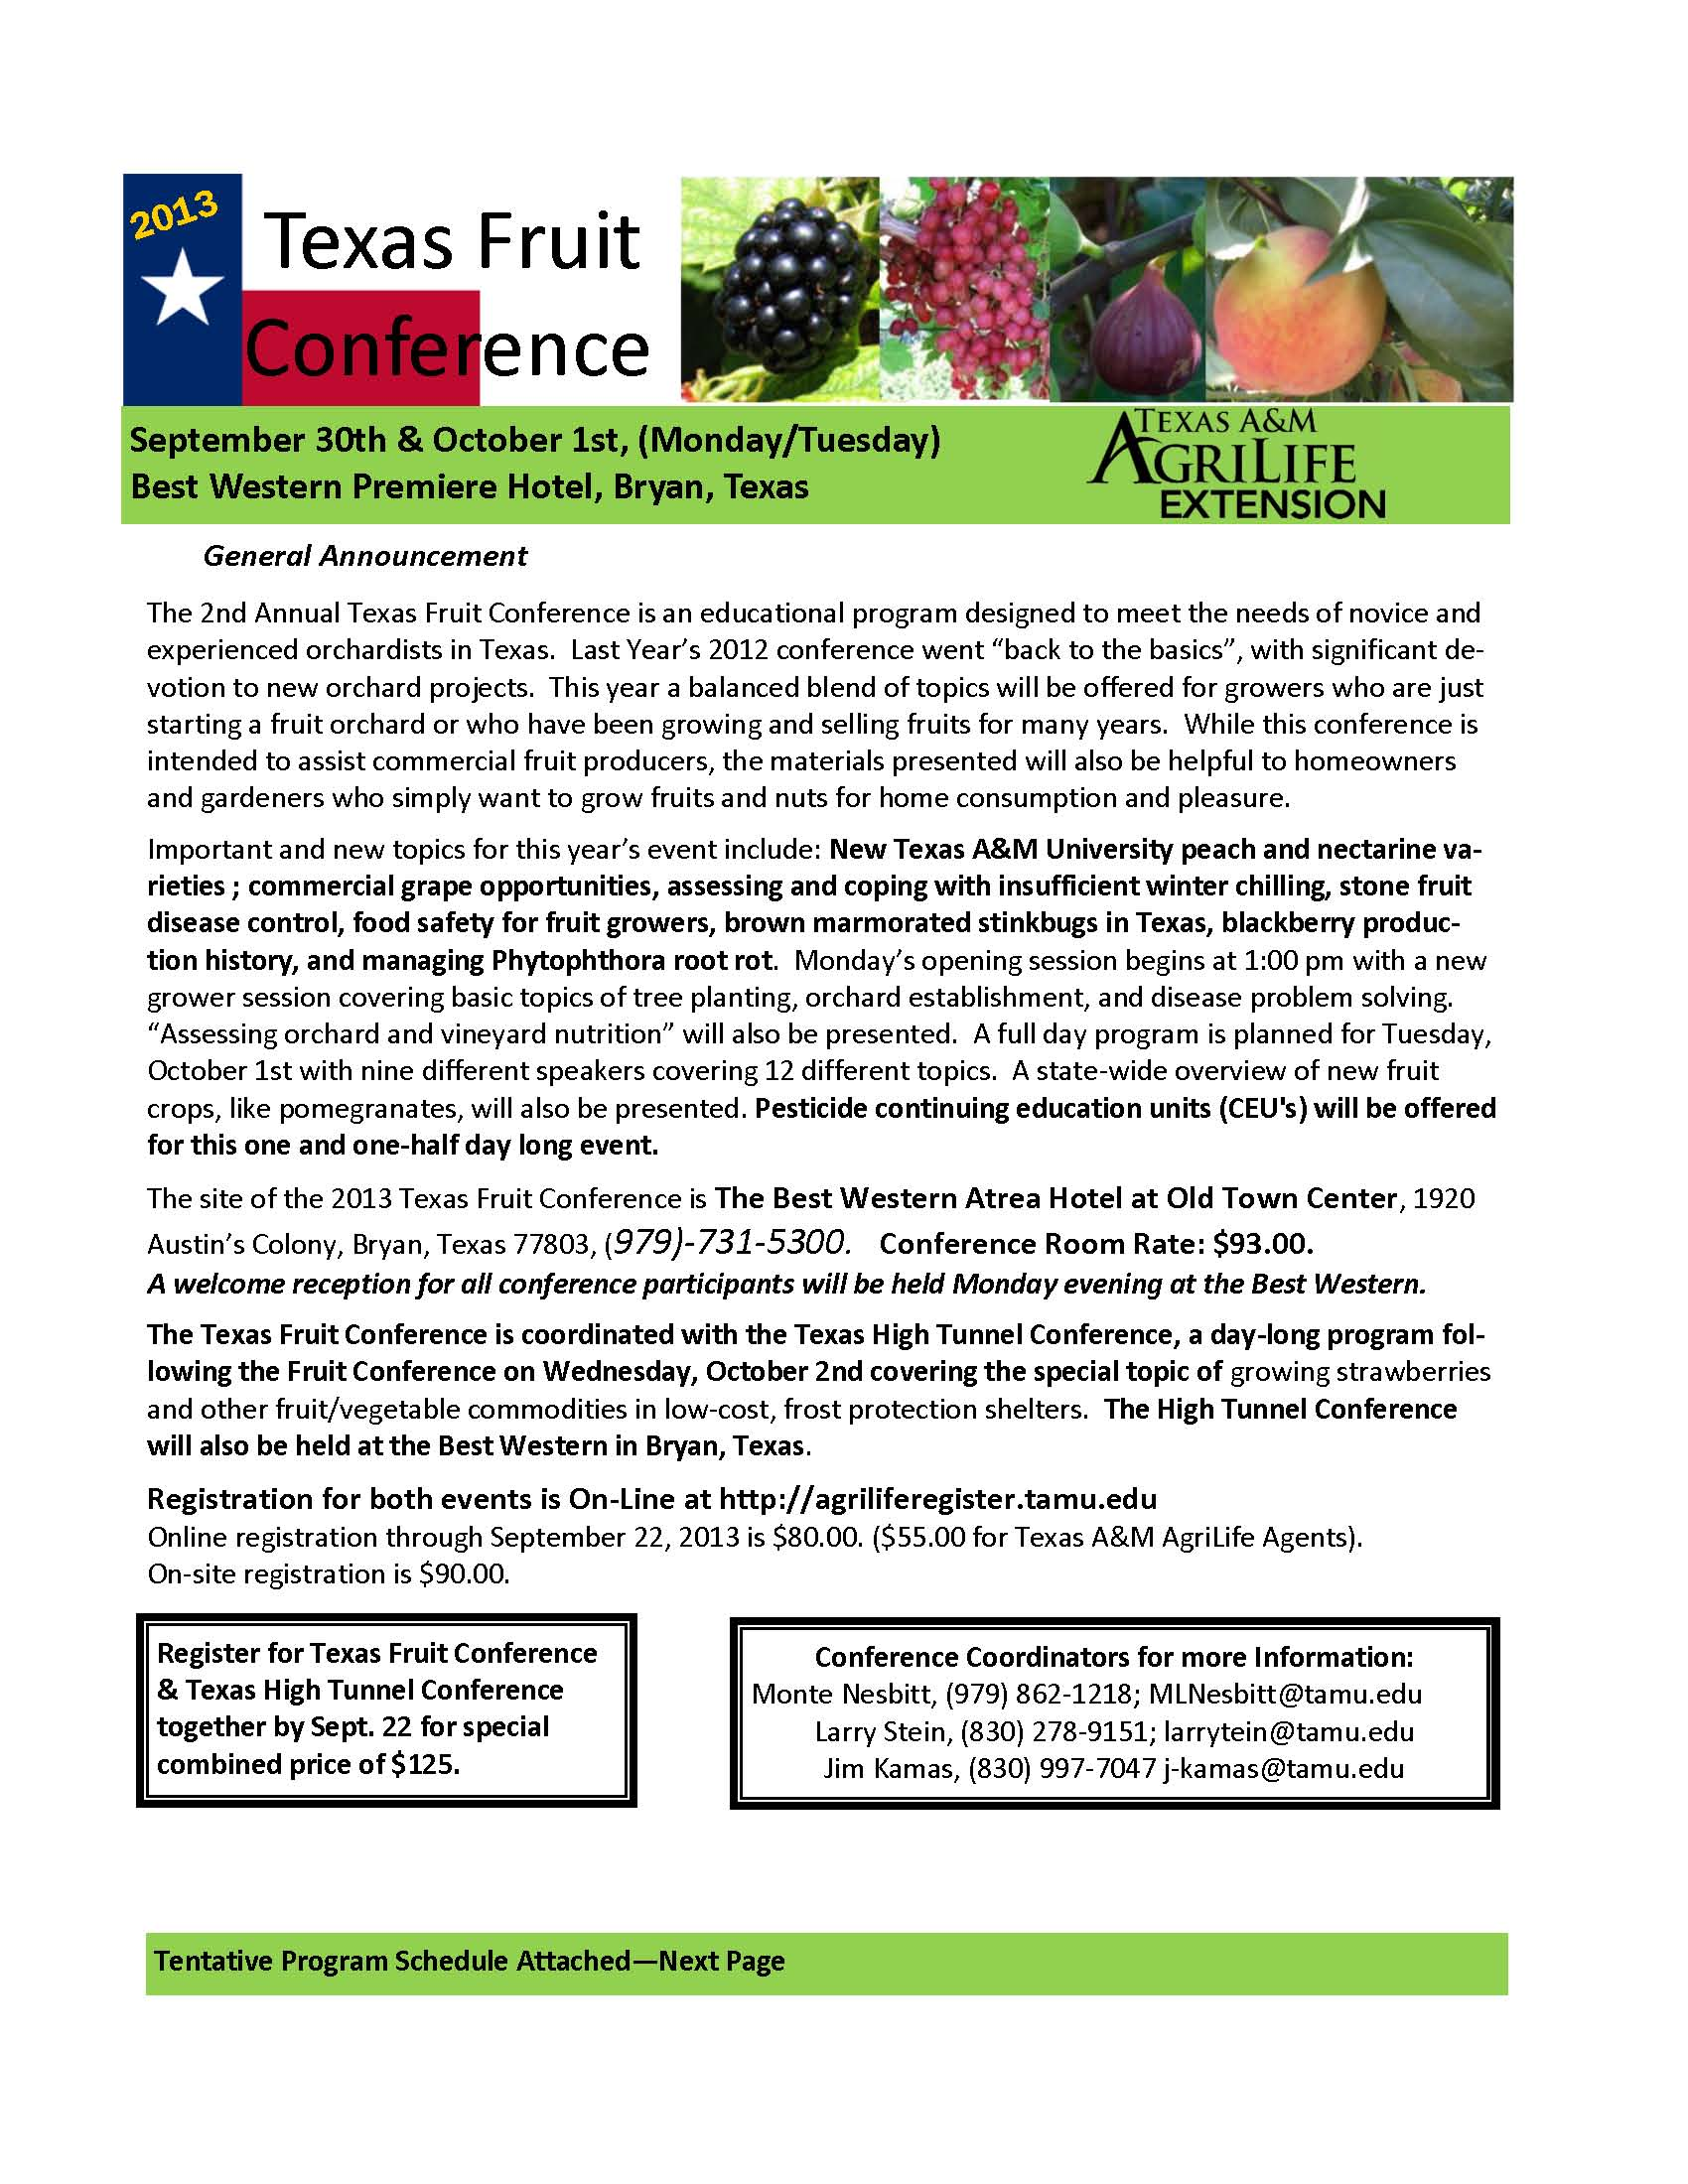 2013 Texas Fruit Conference Agenda Posted | Fruit & Nut Resources